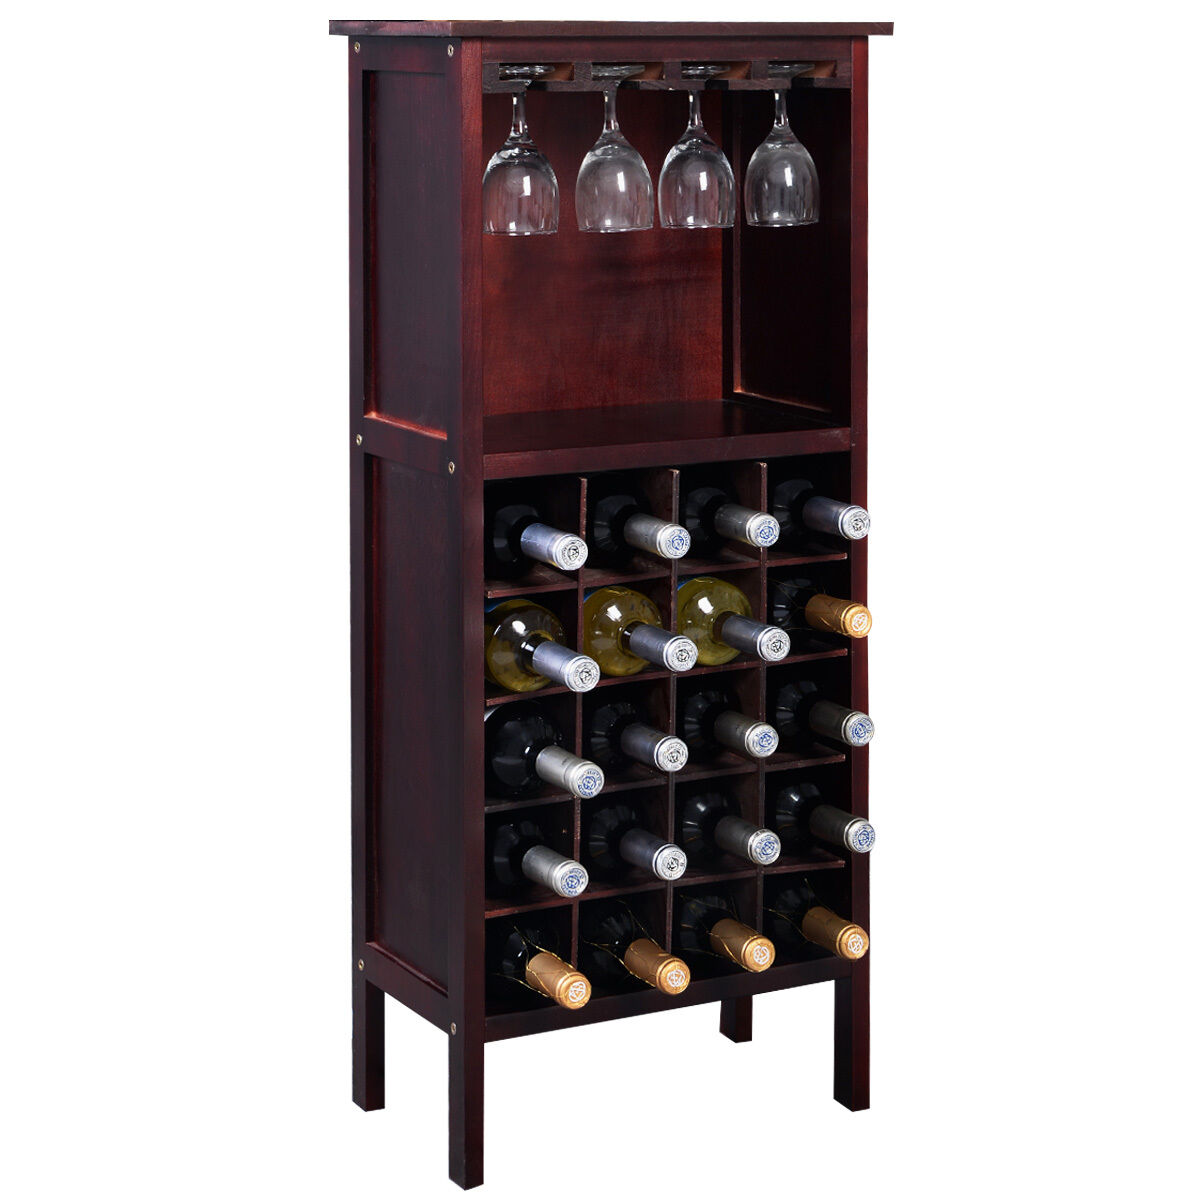 Solid Wood Liquor Cabinet Bar Furniture Rustic Display Rack Wine Whiskey Storage